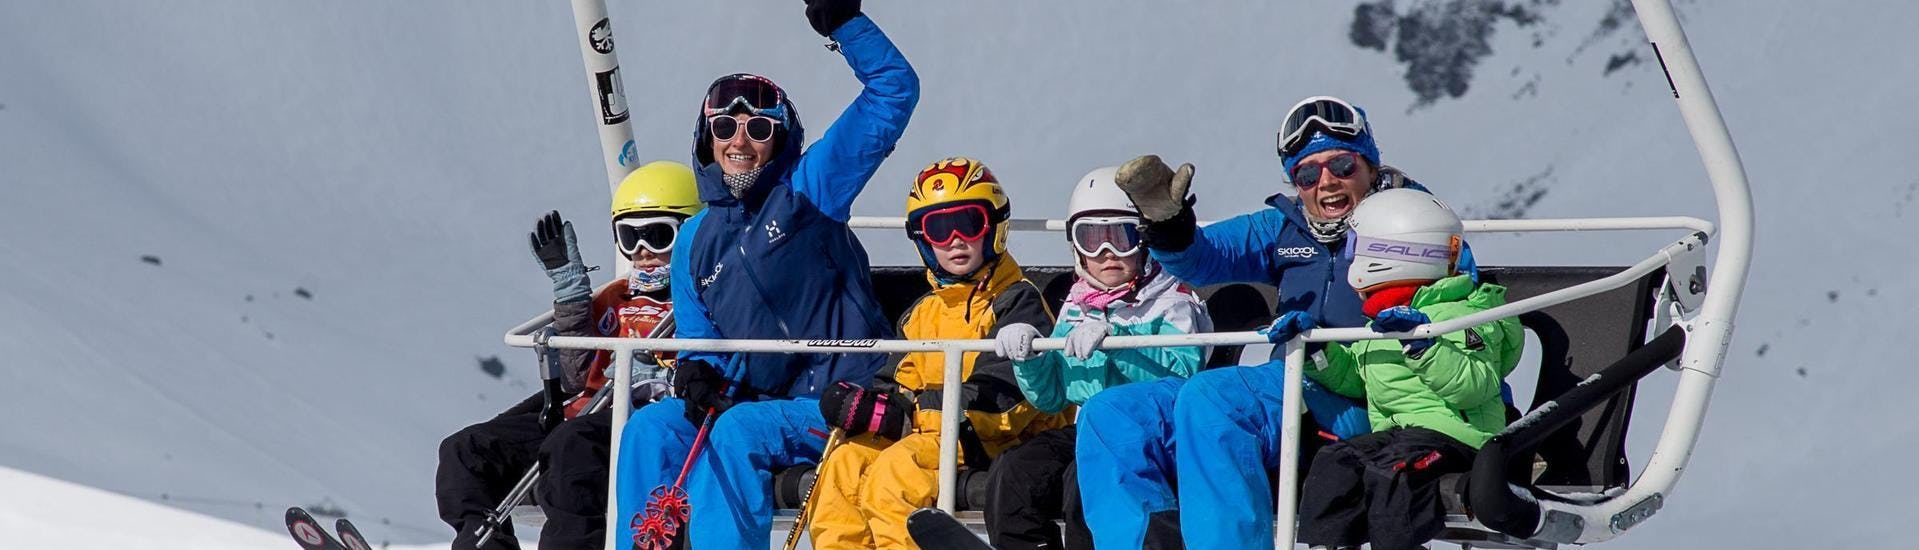 A group of children is riding the chair lift together with their ski instructors from the ski school Ski Cool during their Private Ski Lessons for Kids - School Holiday - All Ages in the ski resort of Val Thorens.